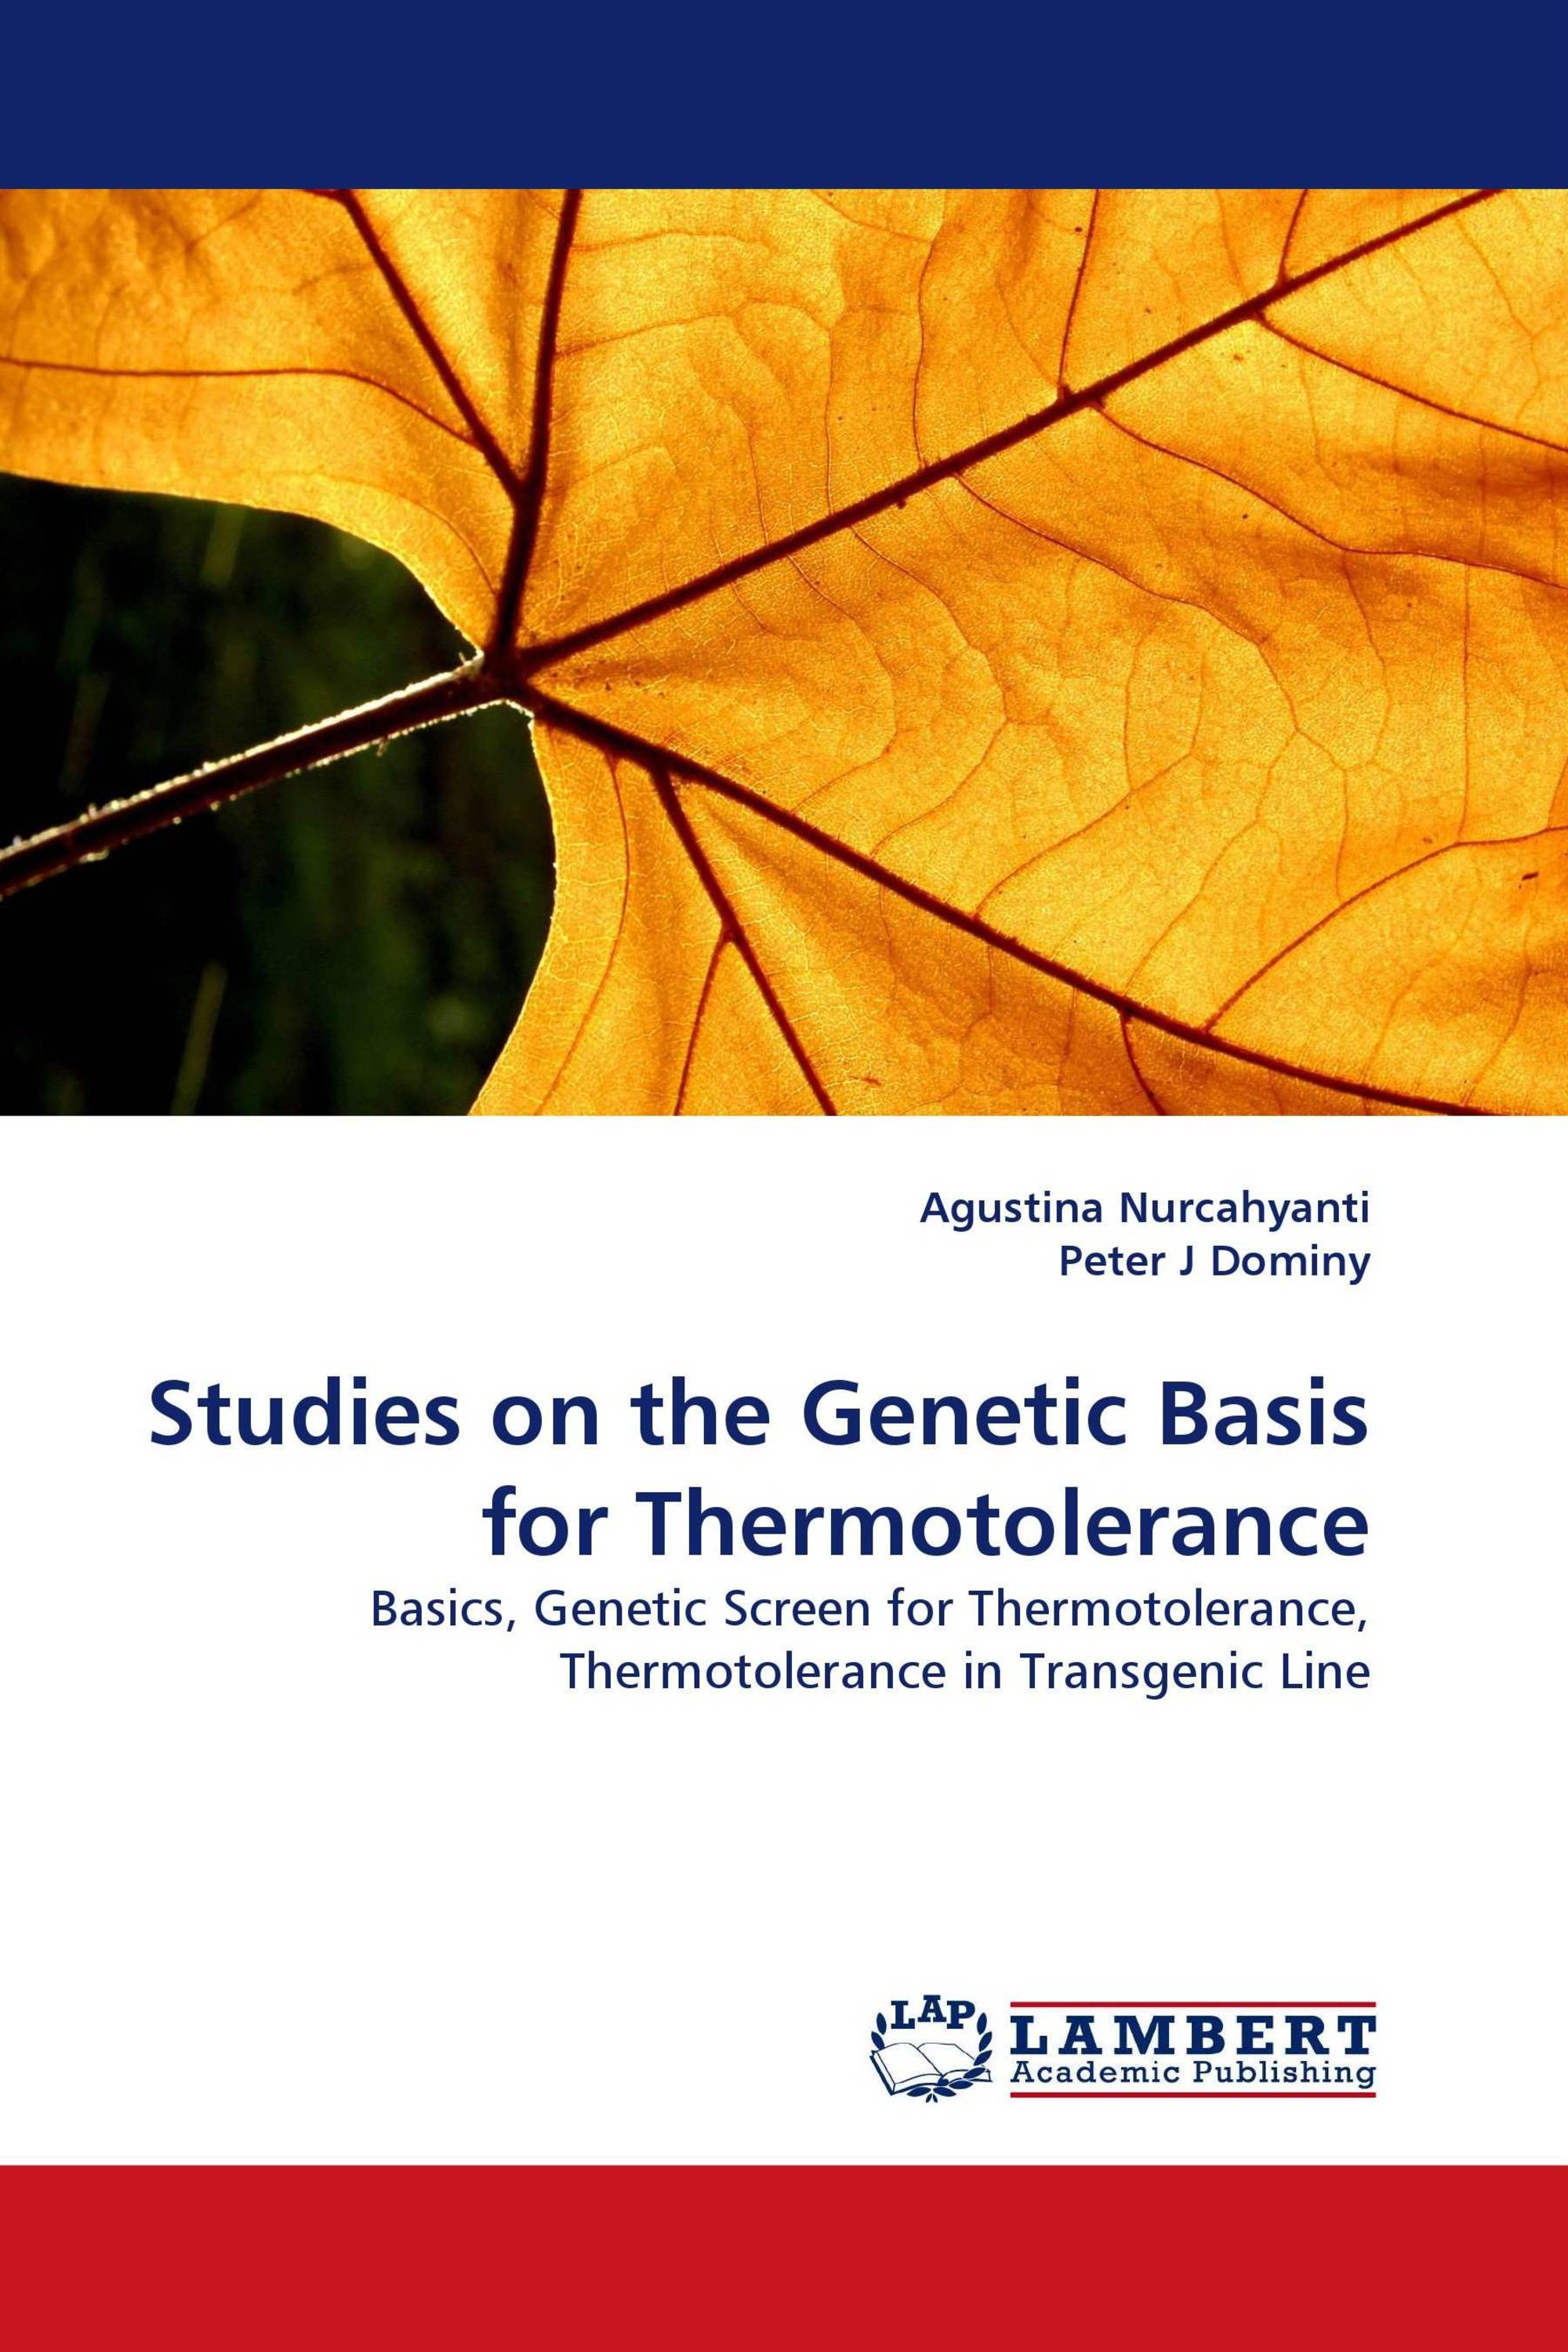 Studies on the Genetic Basis for Thermotolerance